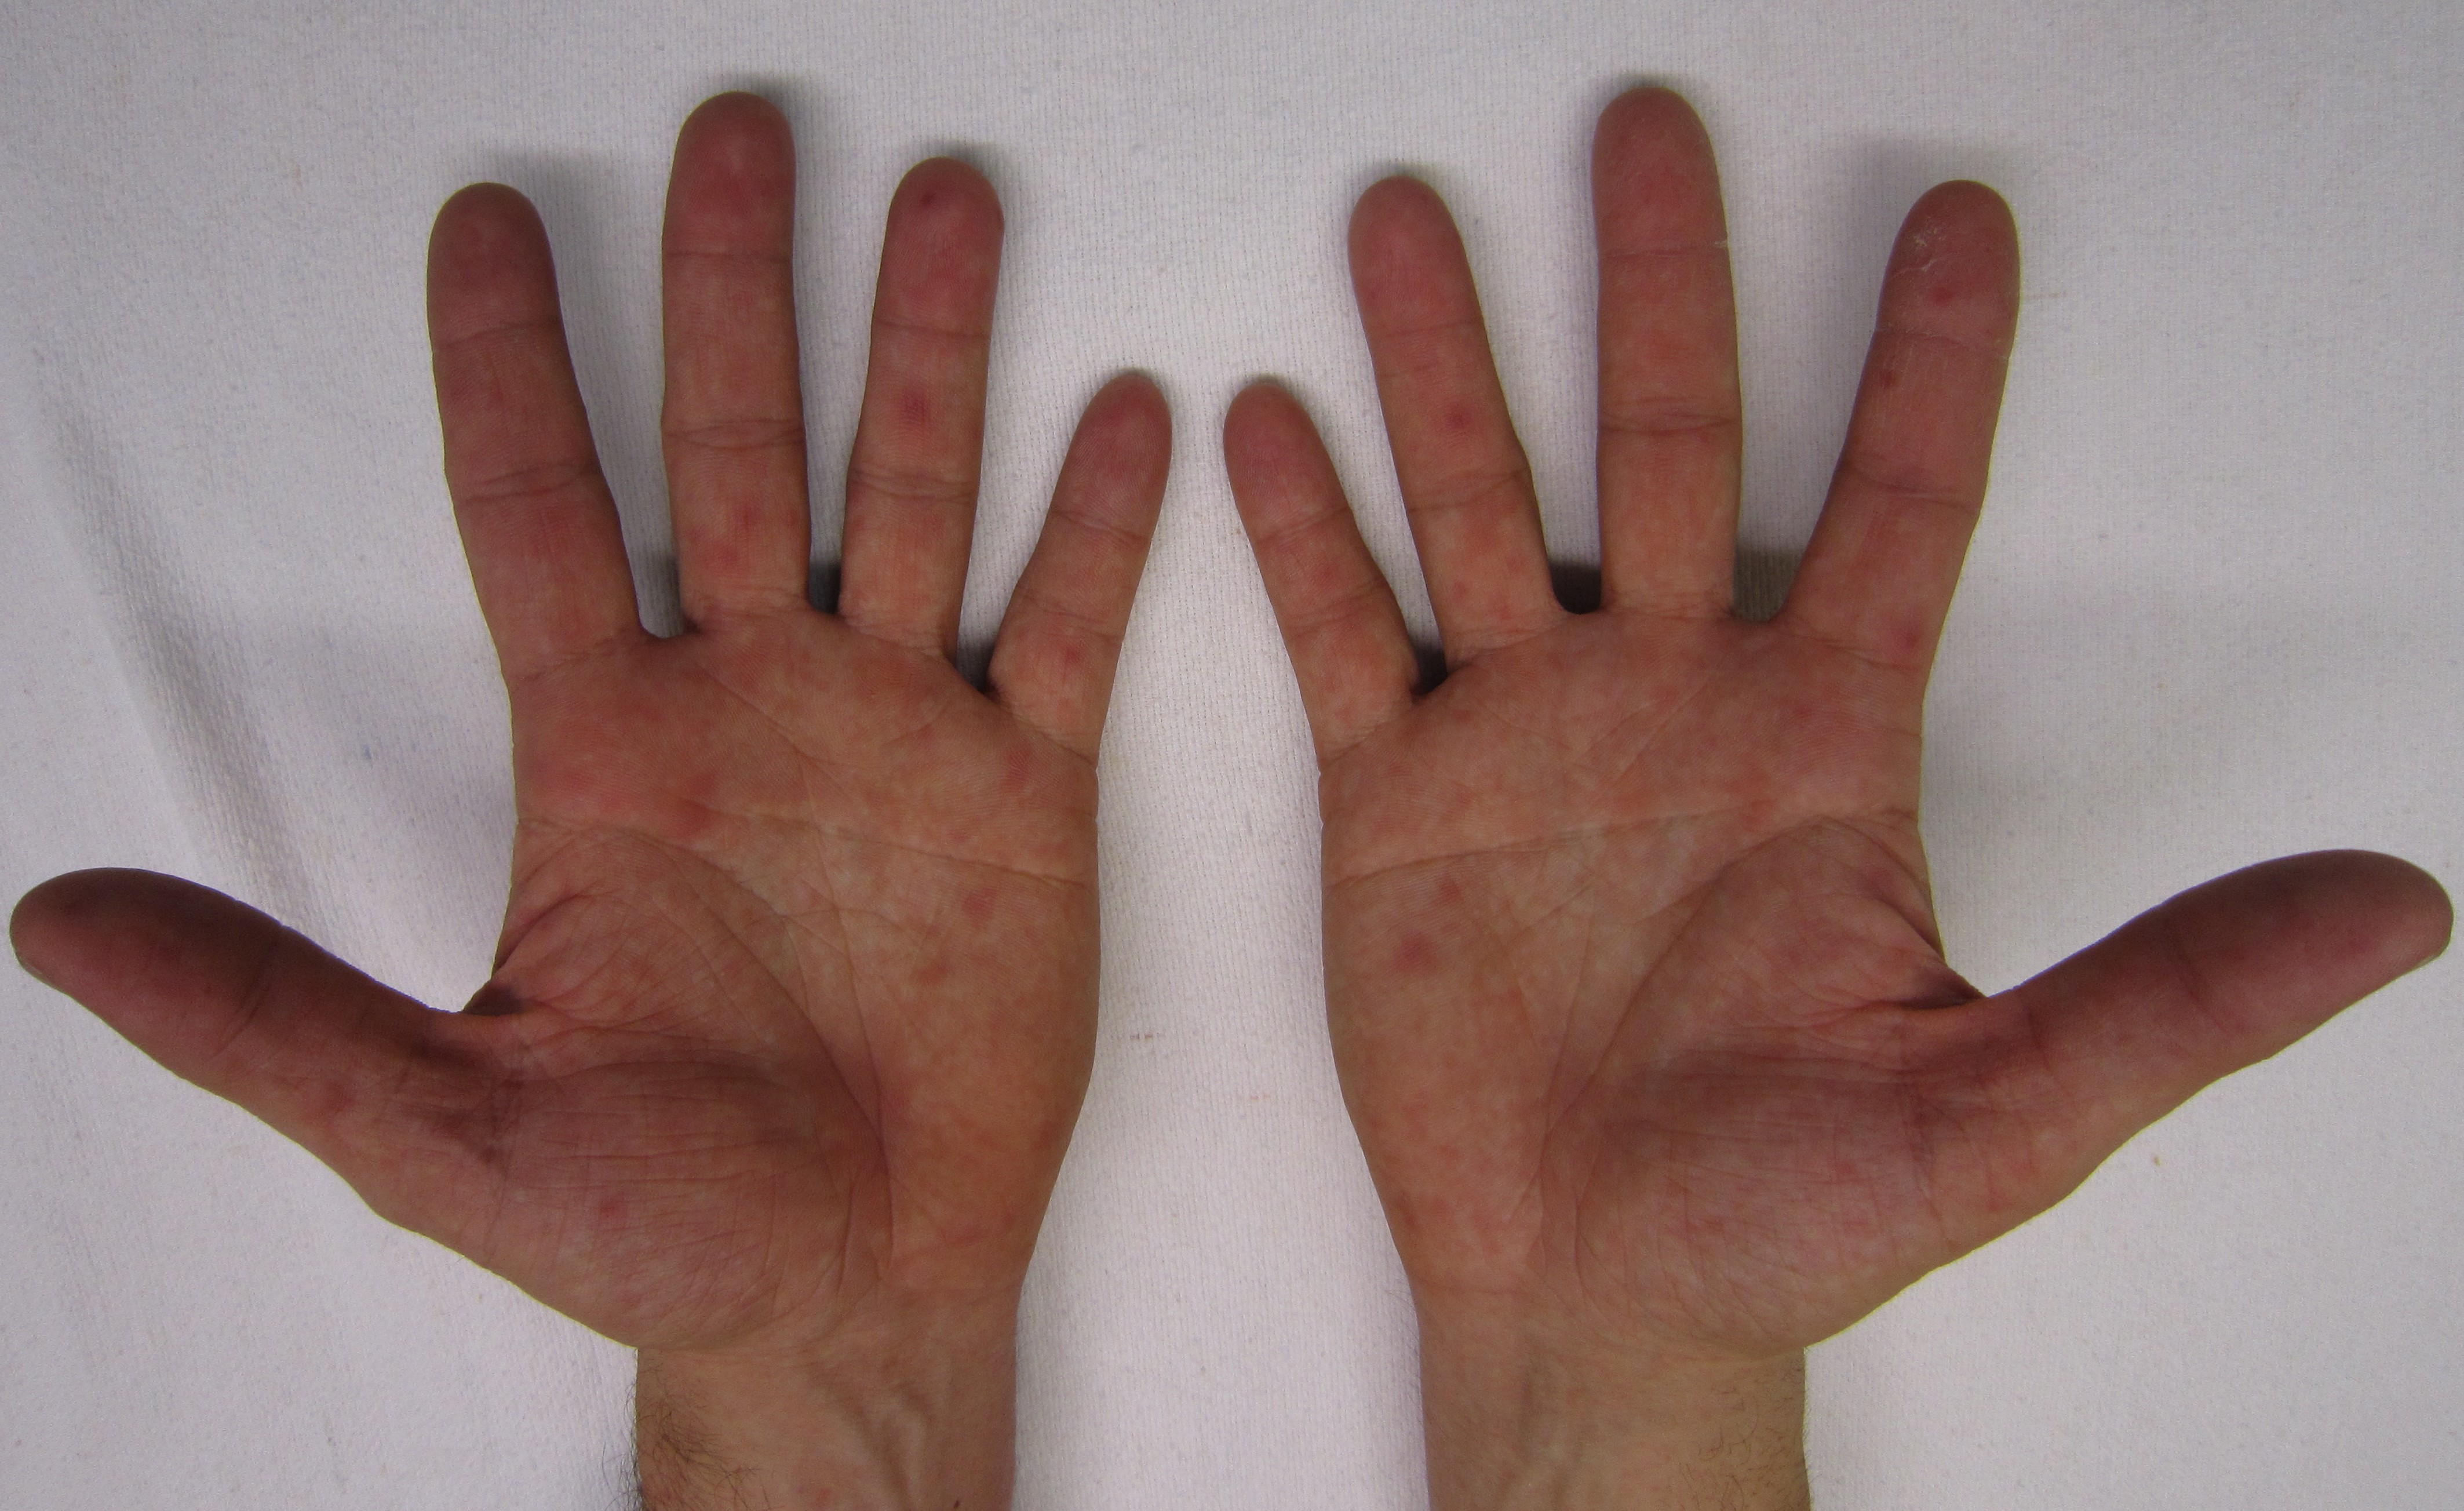 rash on hands and feet in adults